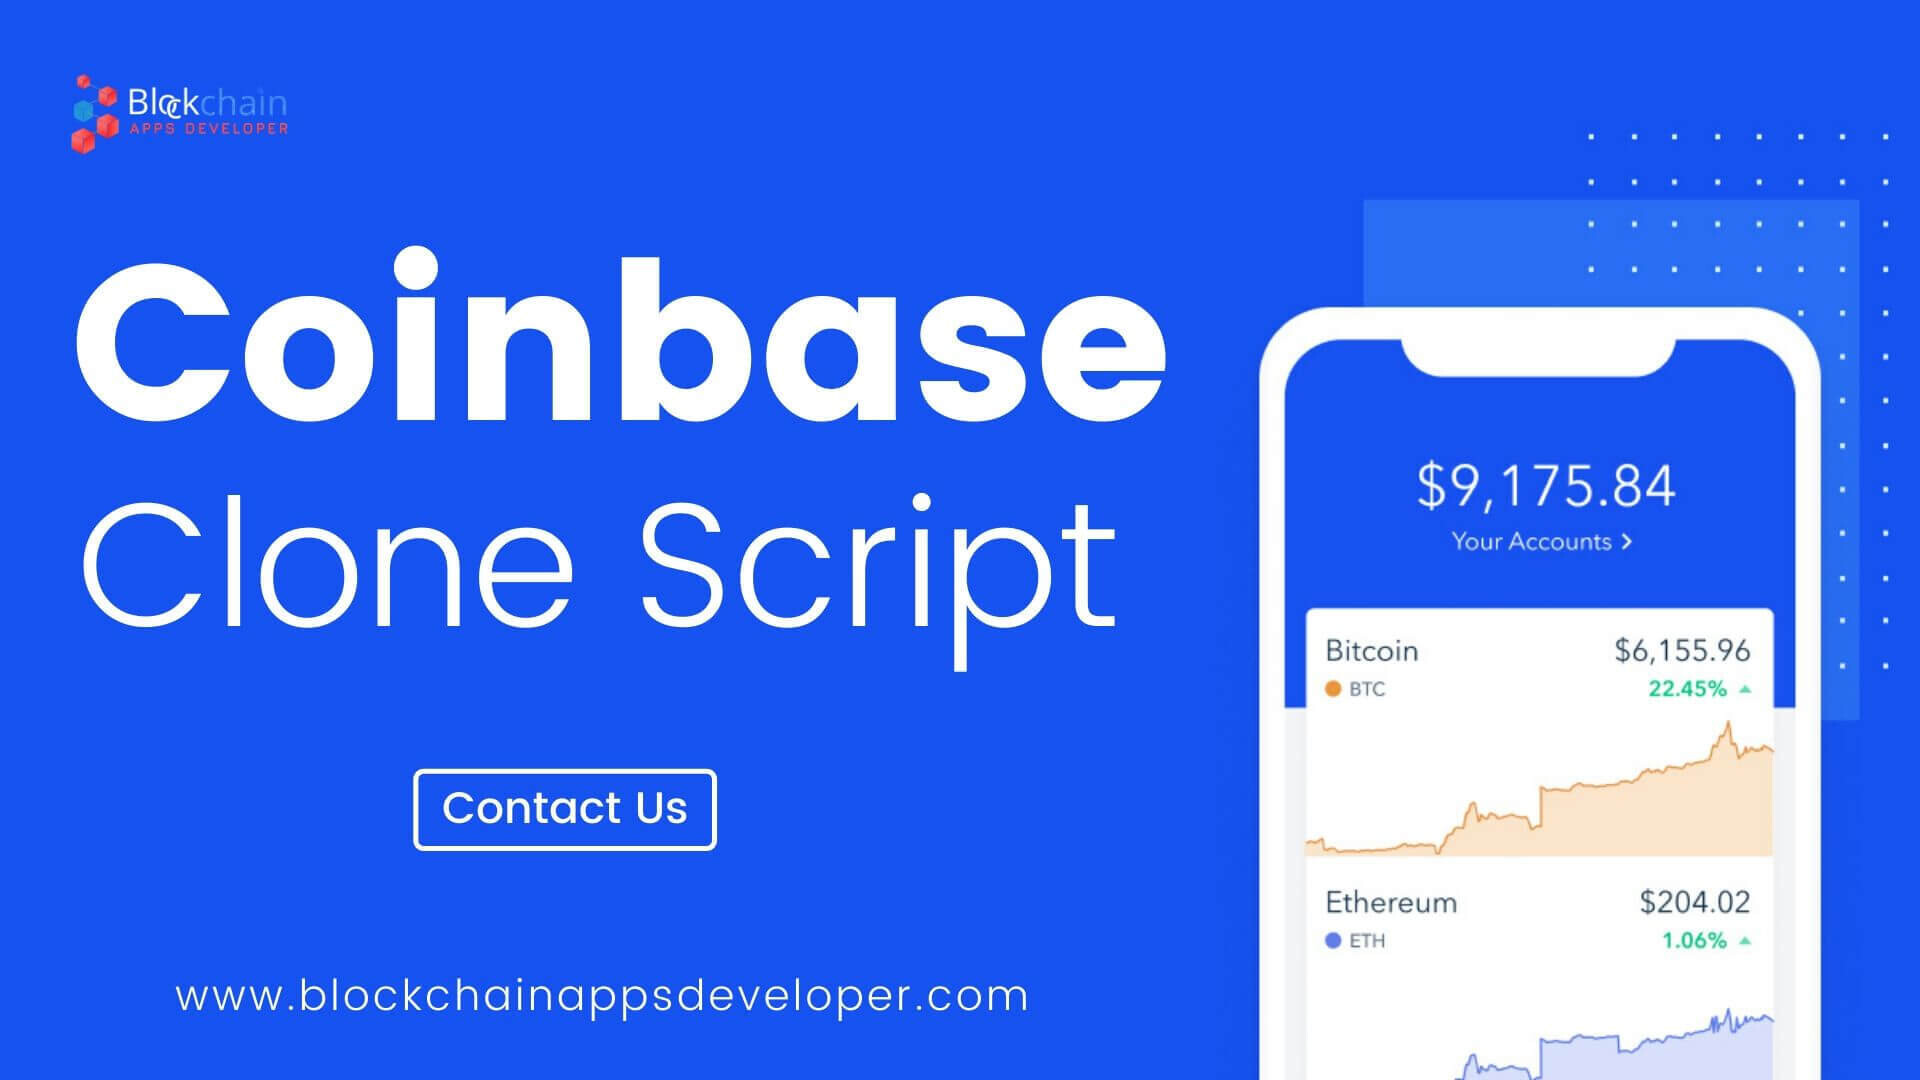 Coinbase Clone Script To Start Cryptocurrency Website Like Coinbase